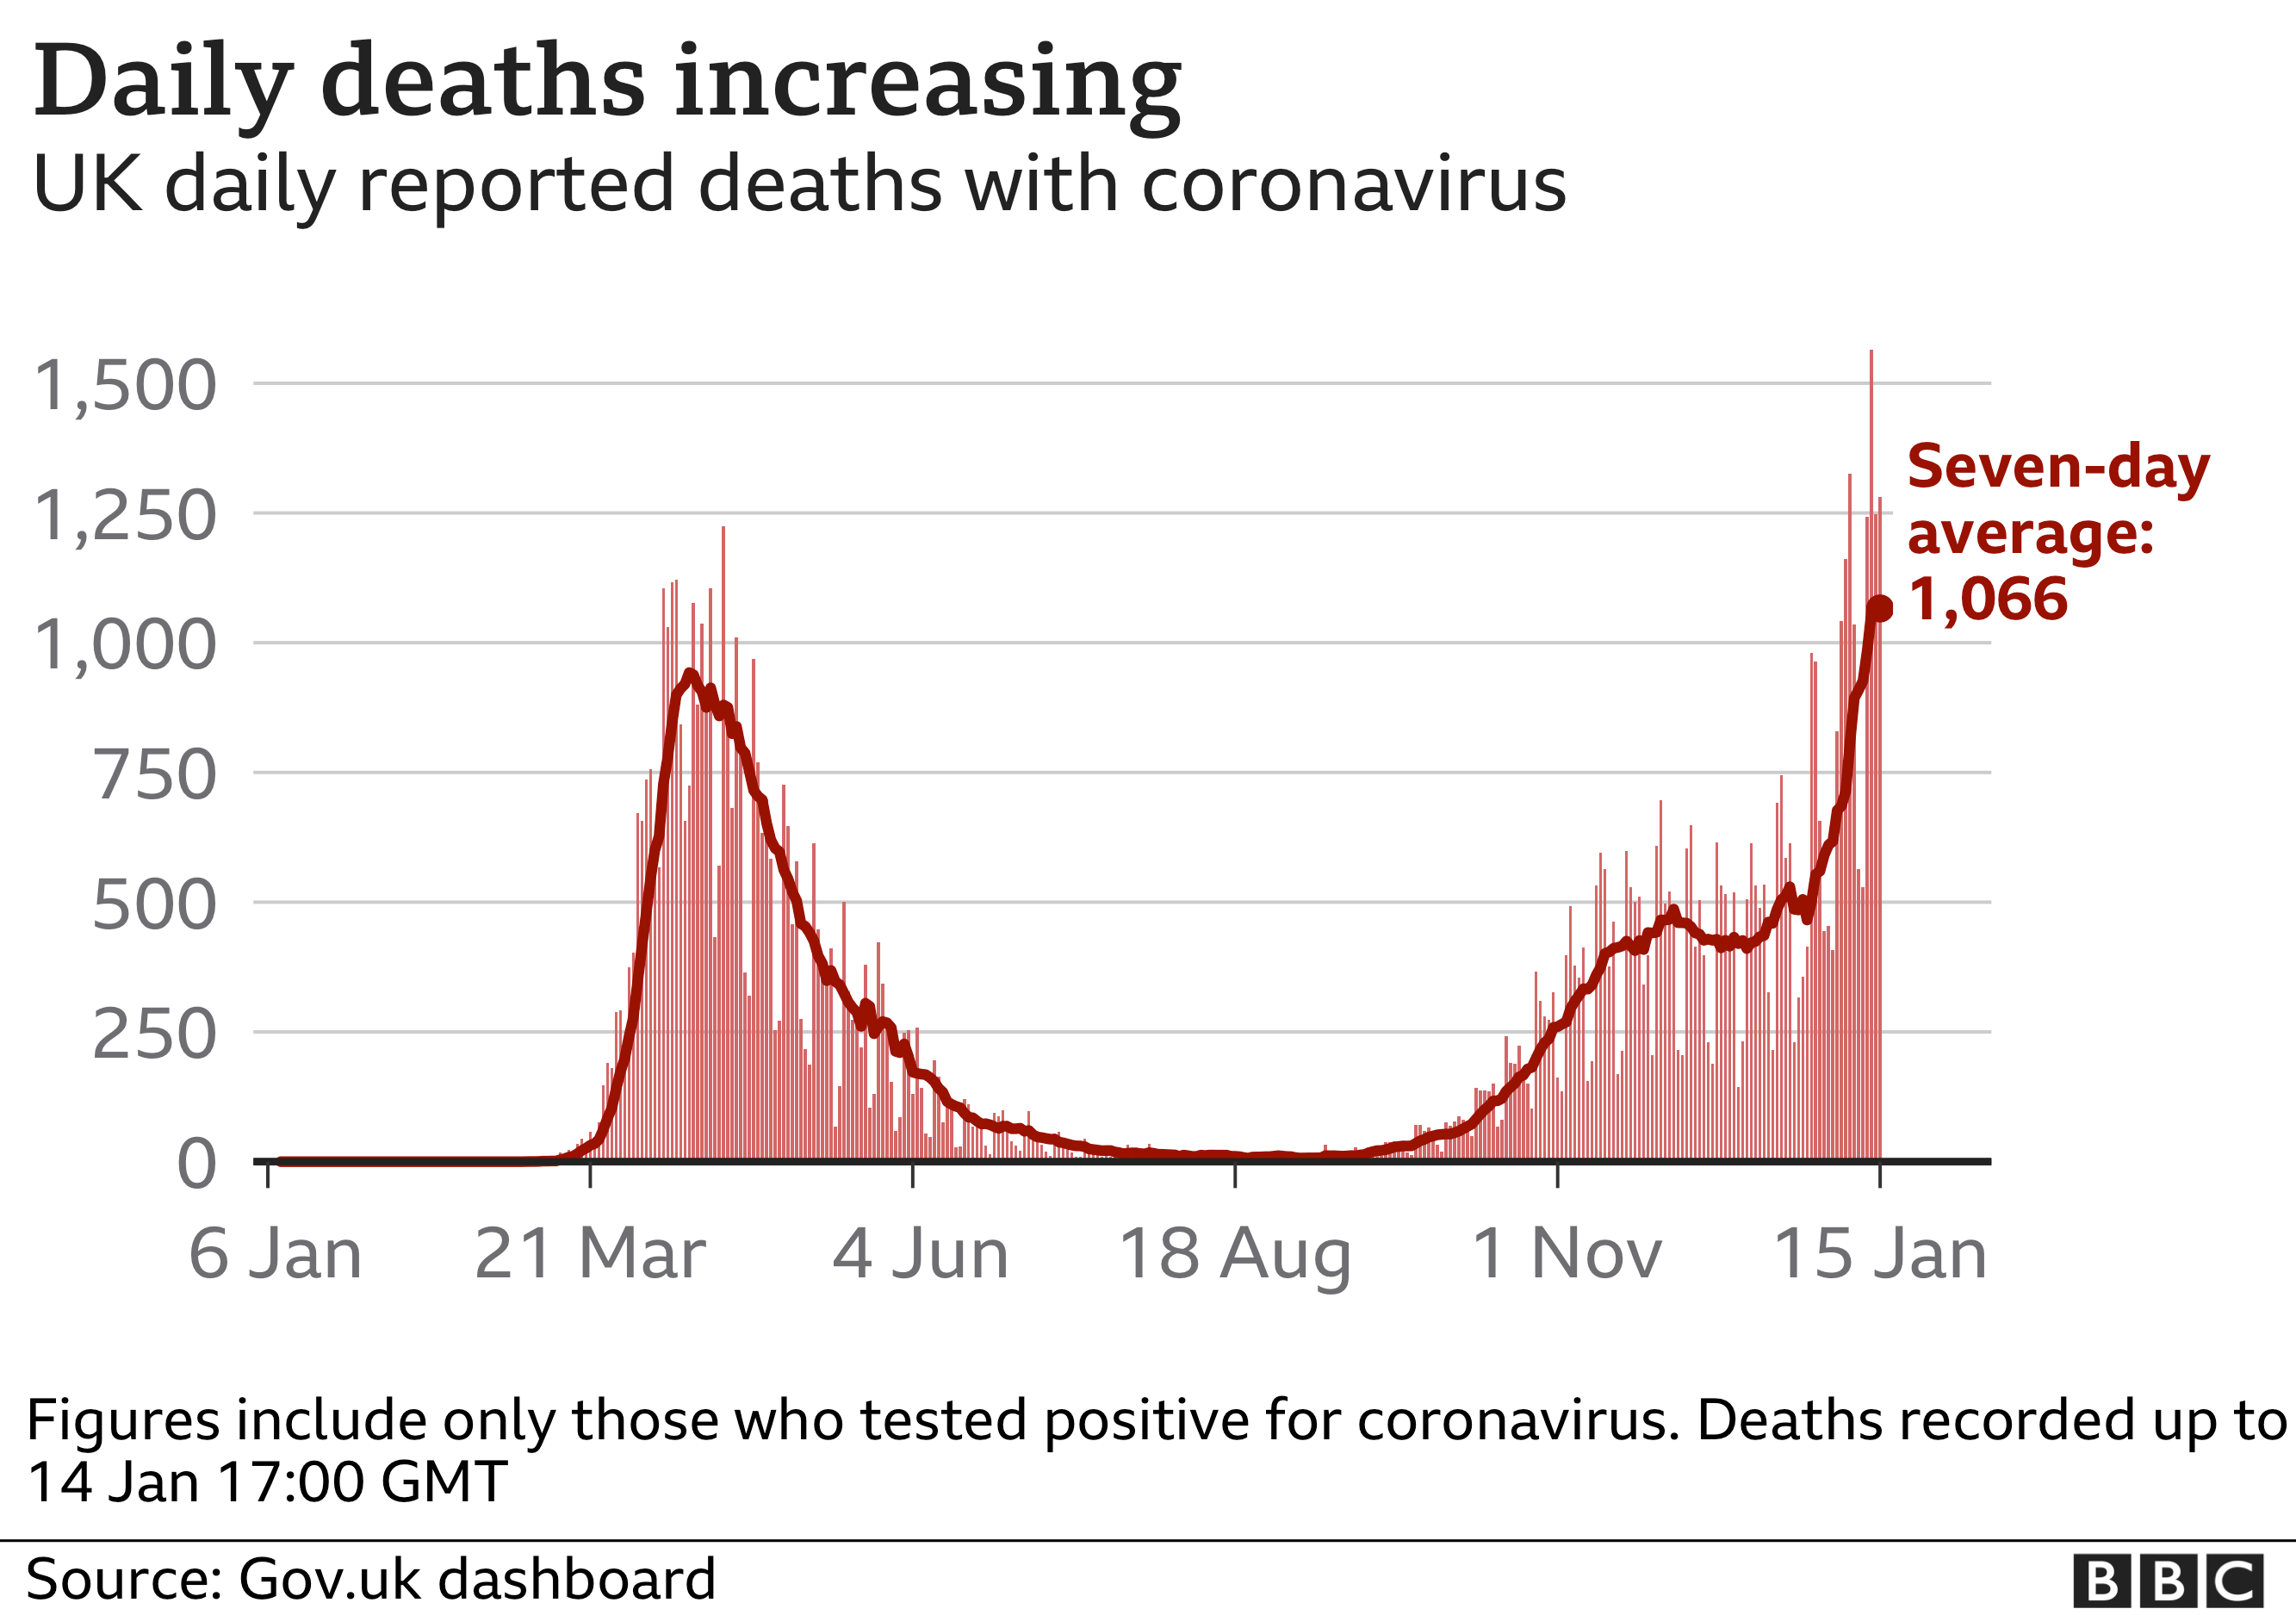 Chart shows daily deaths increasing. Updated 15th Jan.